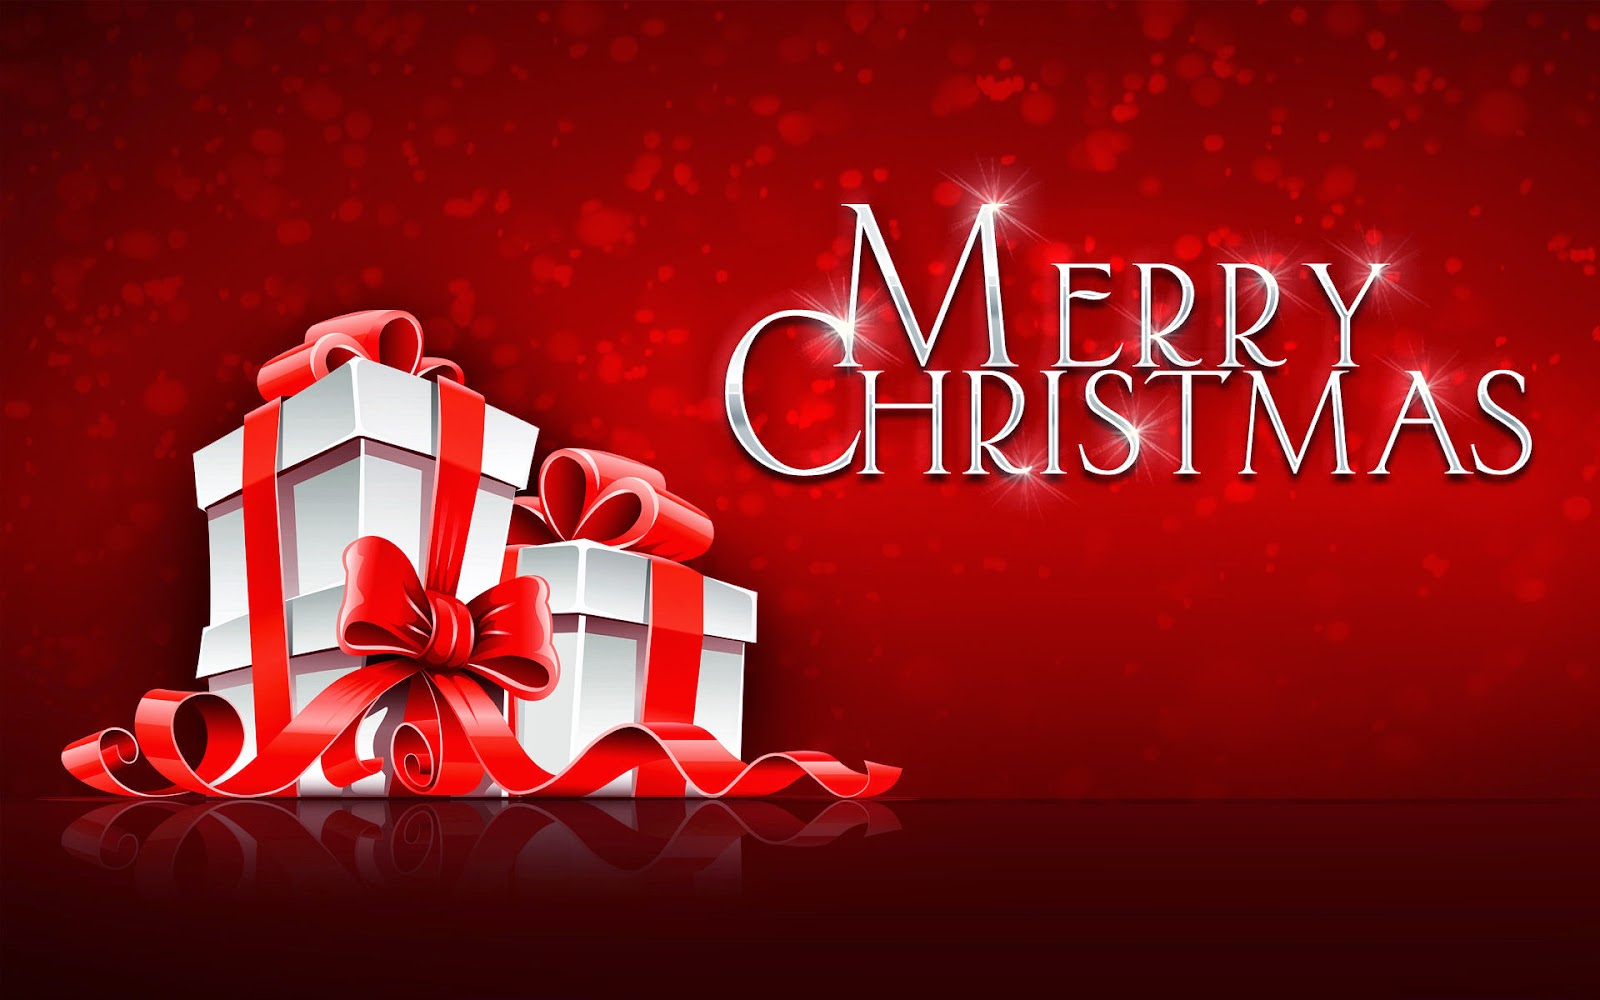 Merry-Christmas-text-wallpaper-with-gift-box-red-Background-HD-image.jpg